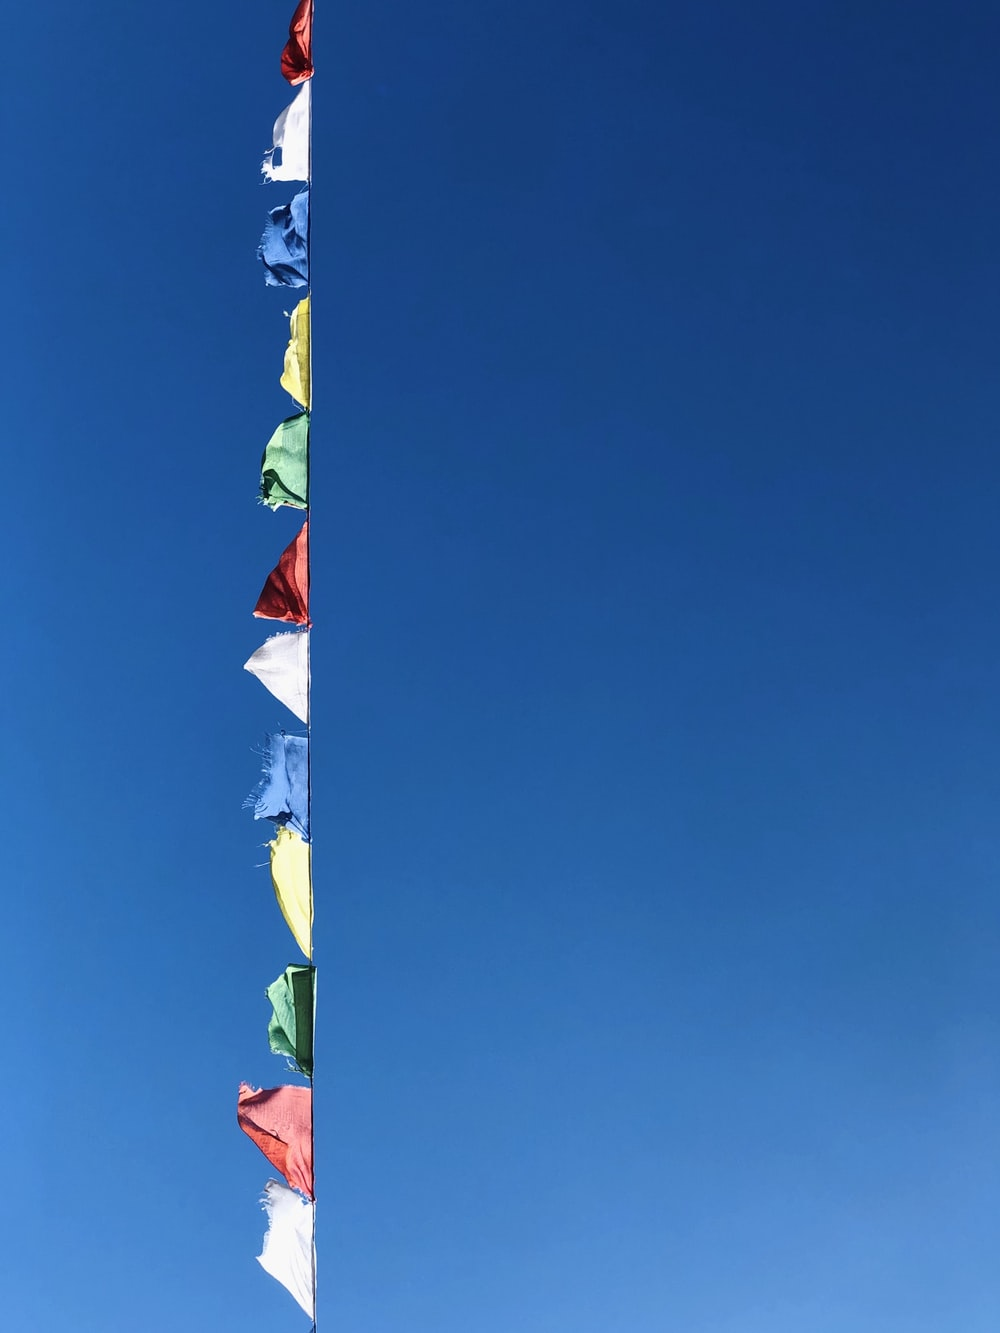 white red and blue flag under blue sky during daytime